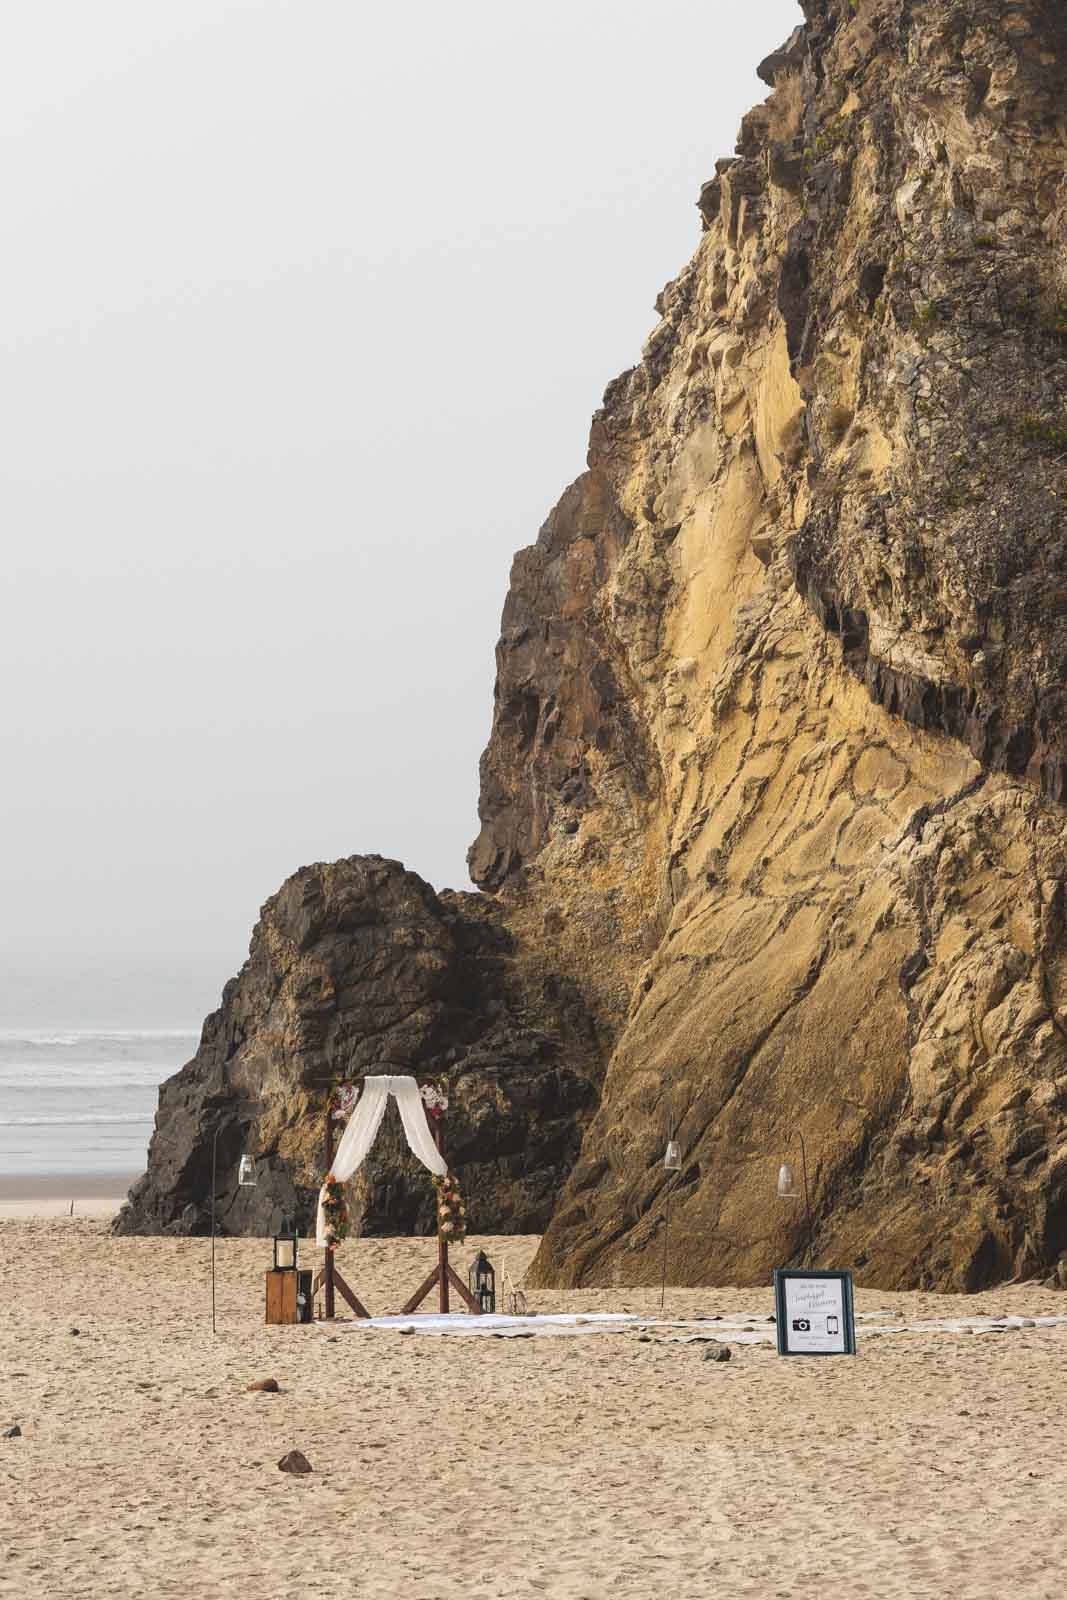 Wedding setup on the beach in front of sea cliffs at Hug Point State Park, one of the Oregon Coast State Parks